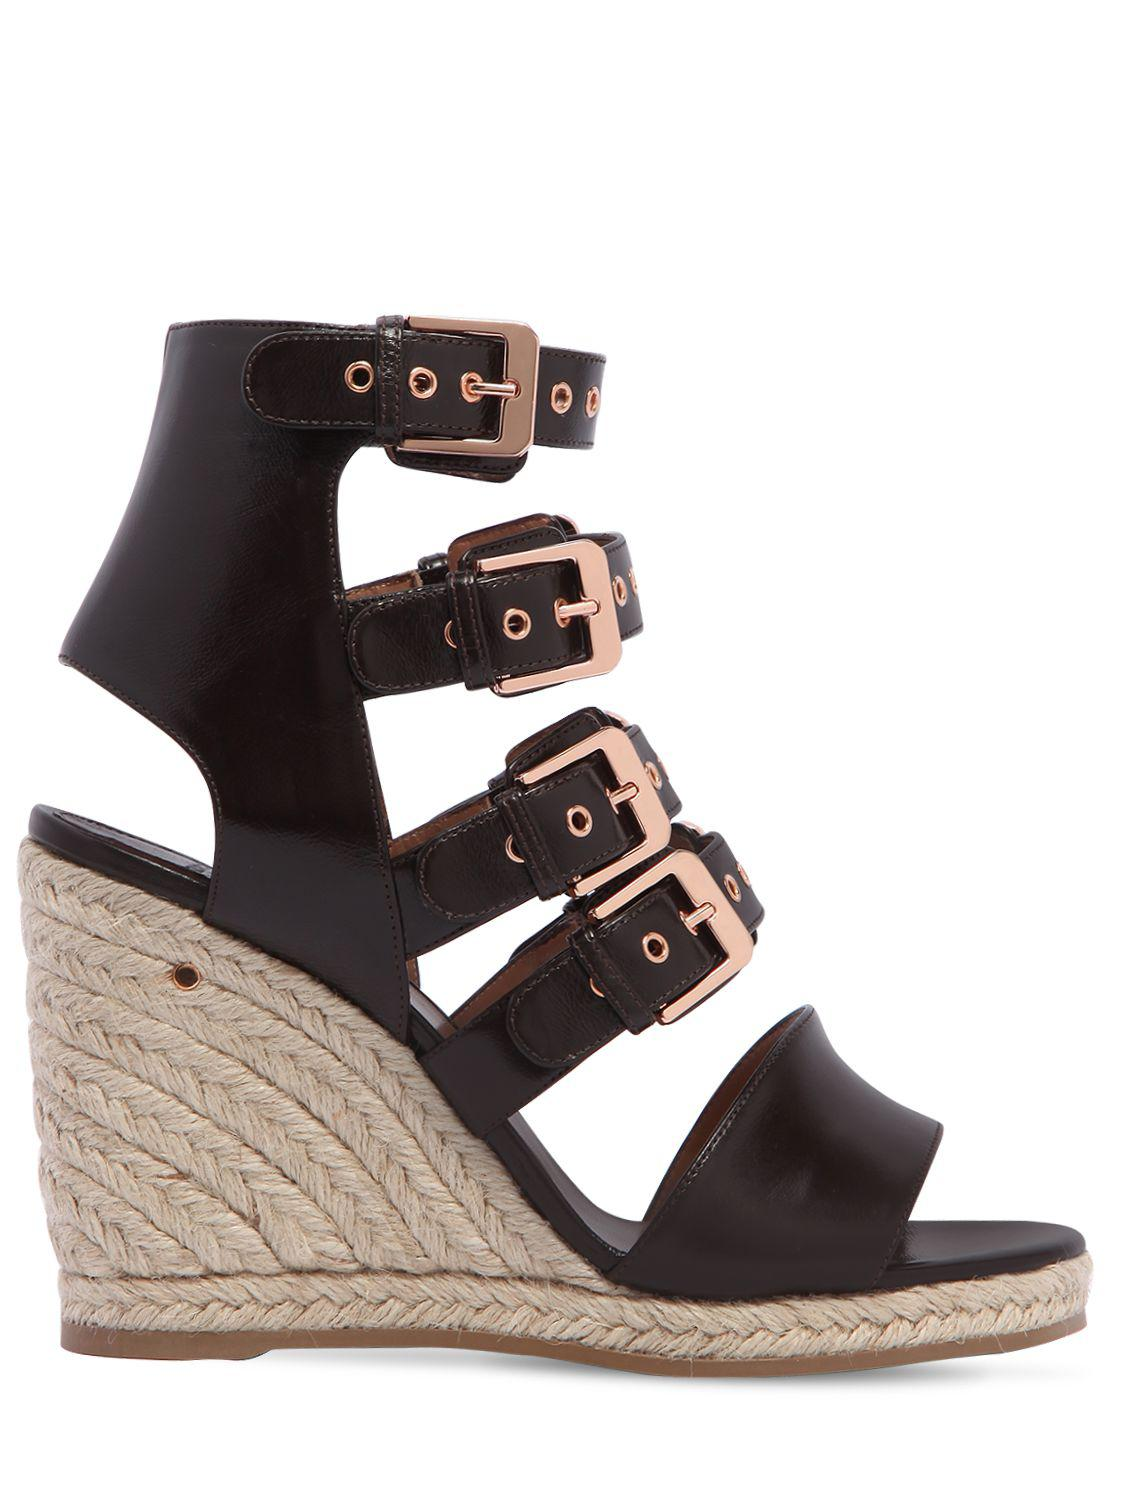 LAURENCE DACADE 90MM ROSARIO MULTI BUCKLE LEATHER WEDGES sAfog